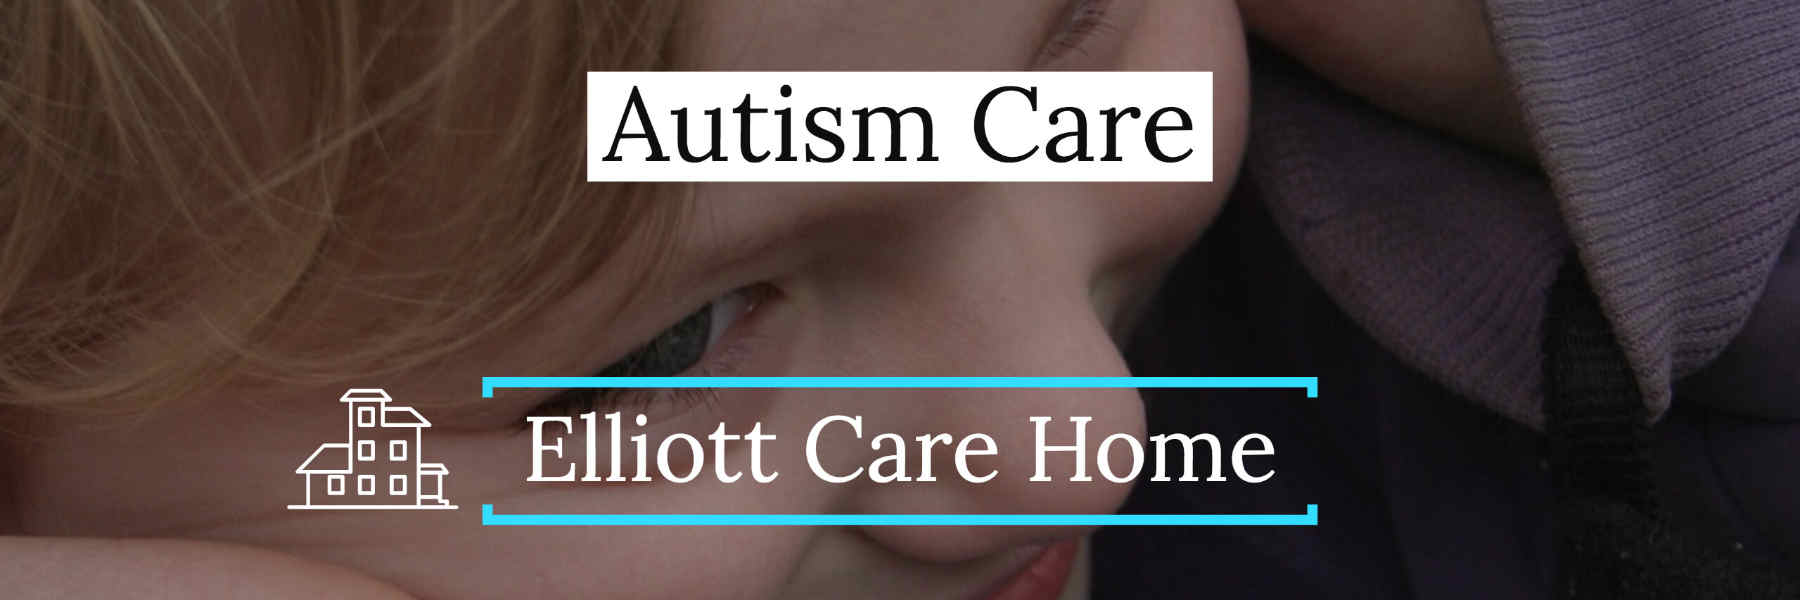 Elliott Autism Residential Care Home Leicester banner